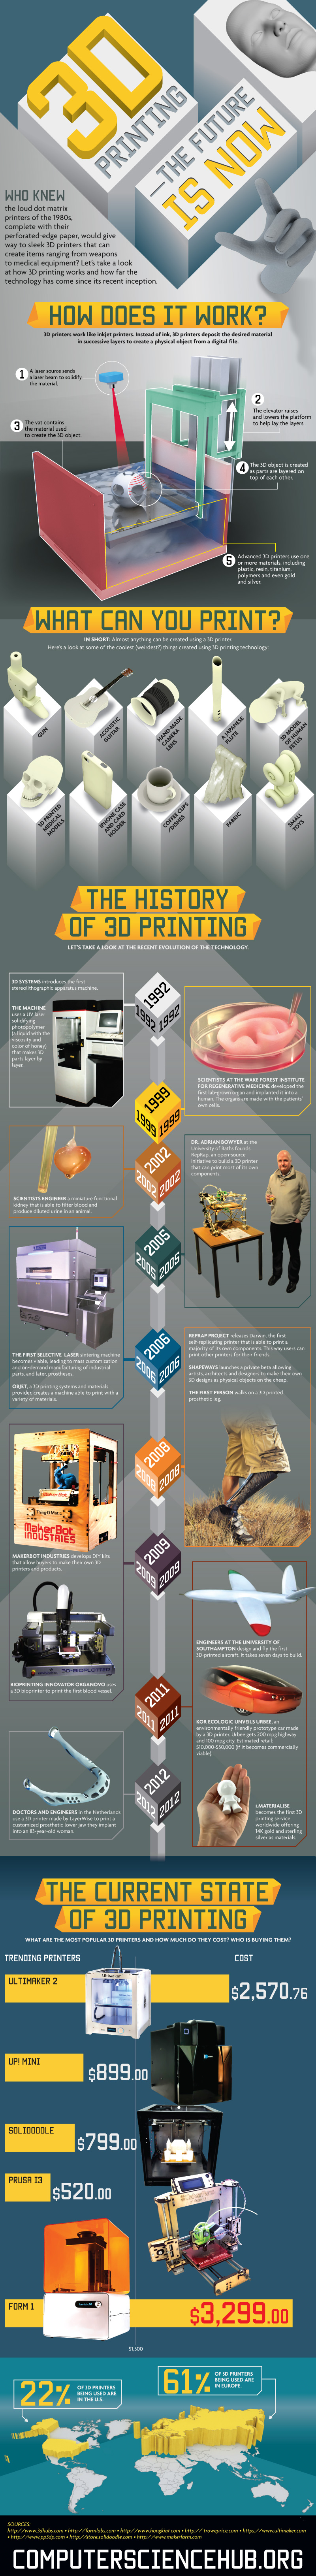 3d-printing infographic